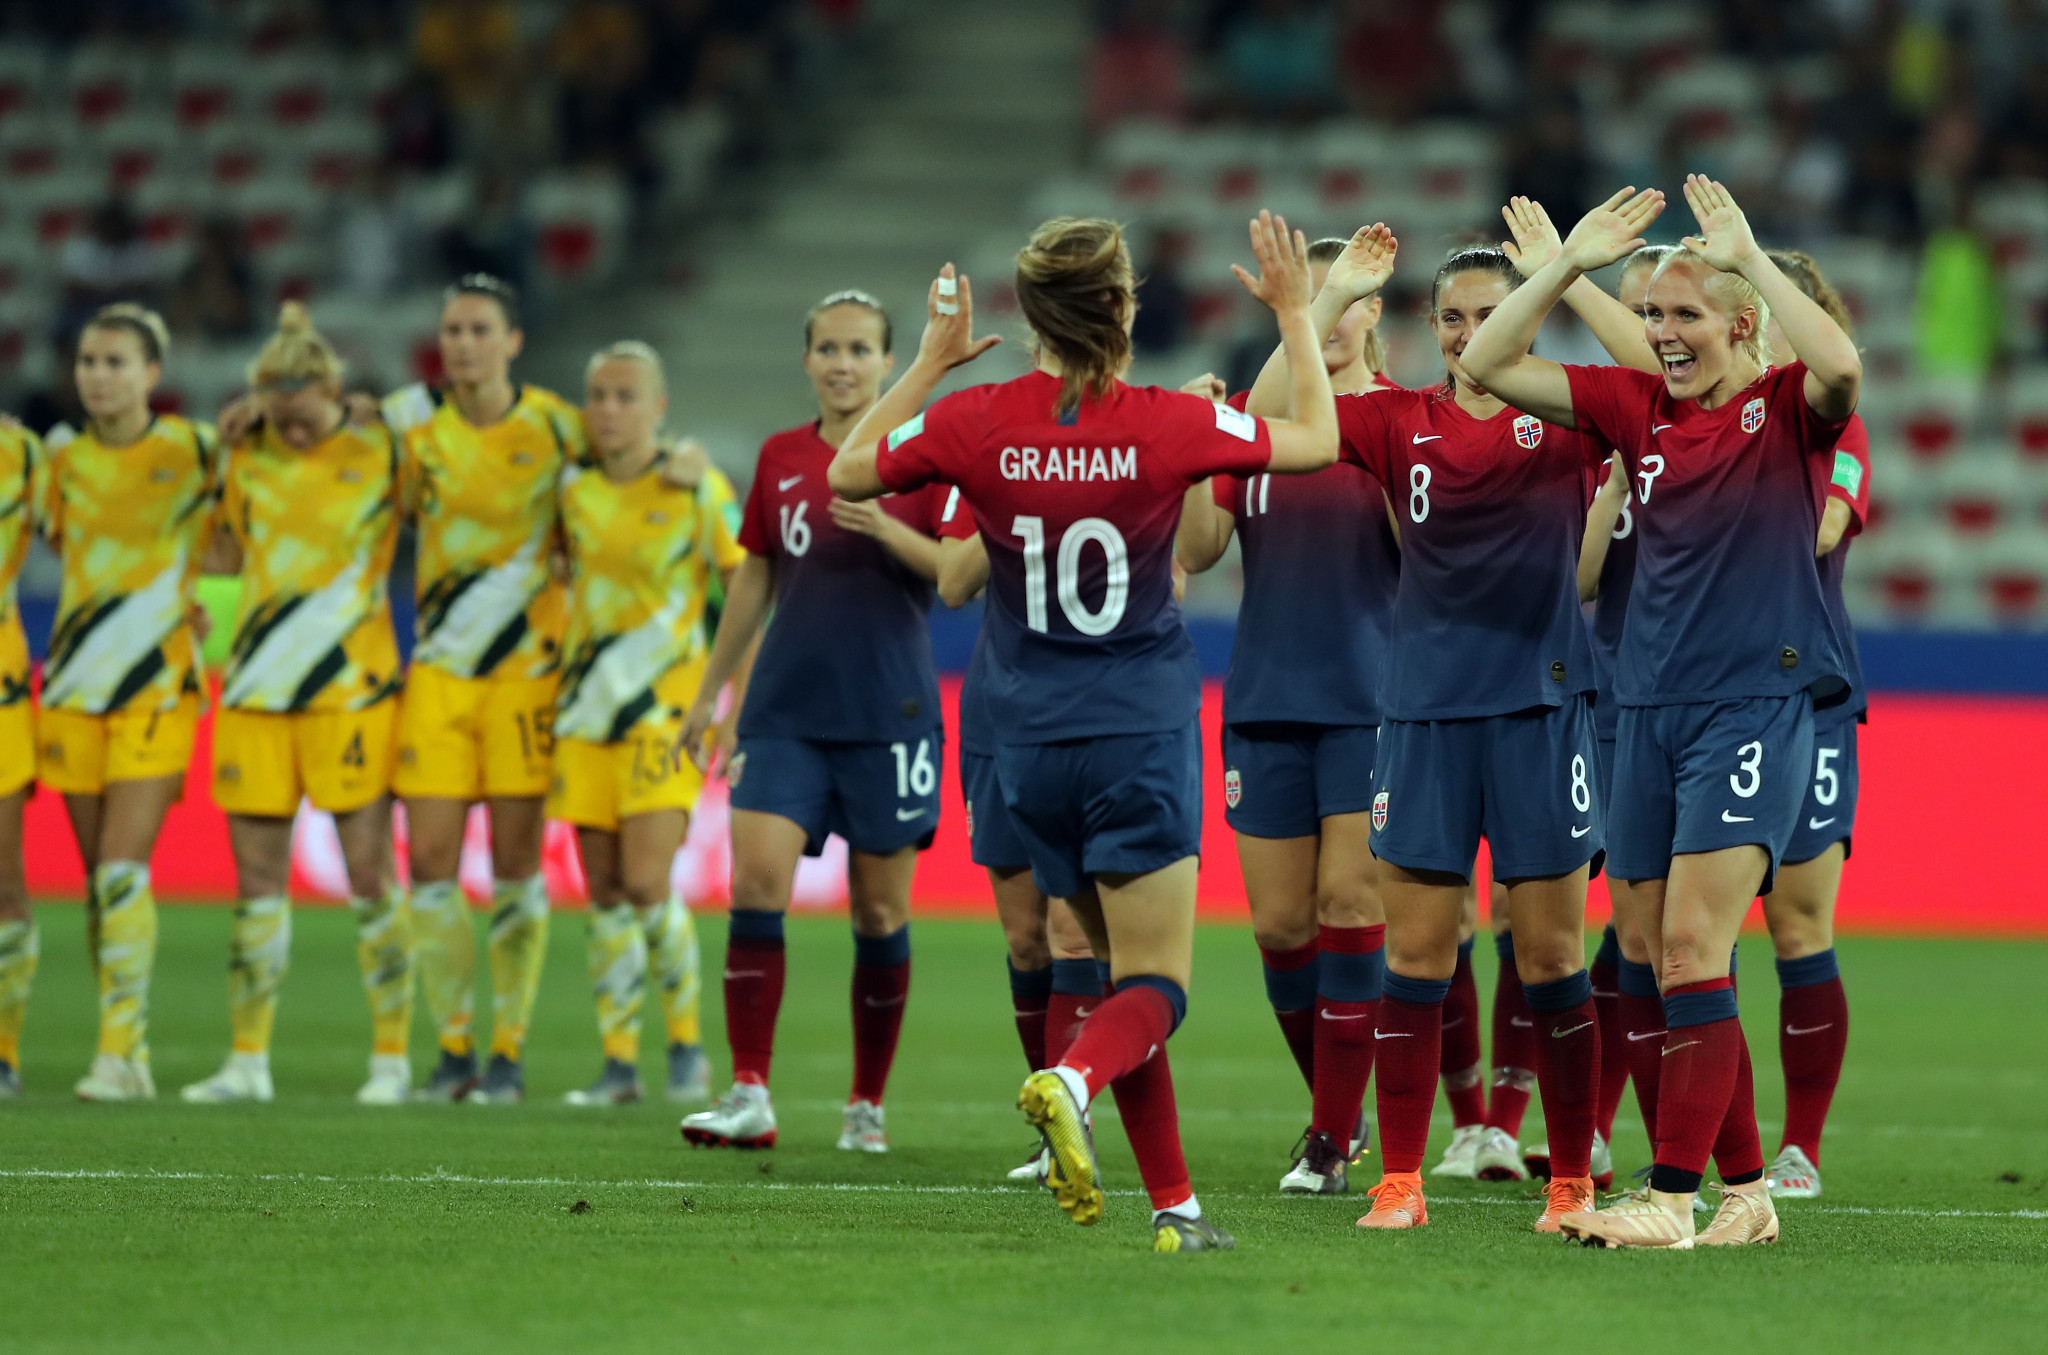 Norway beat Australia on penalties at FIFA Women's World Cup after Germany ease past Nigeria